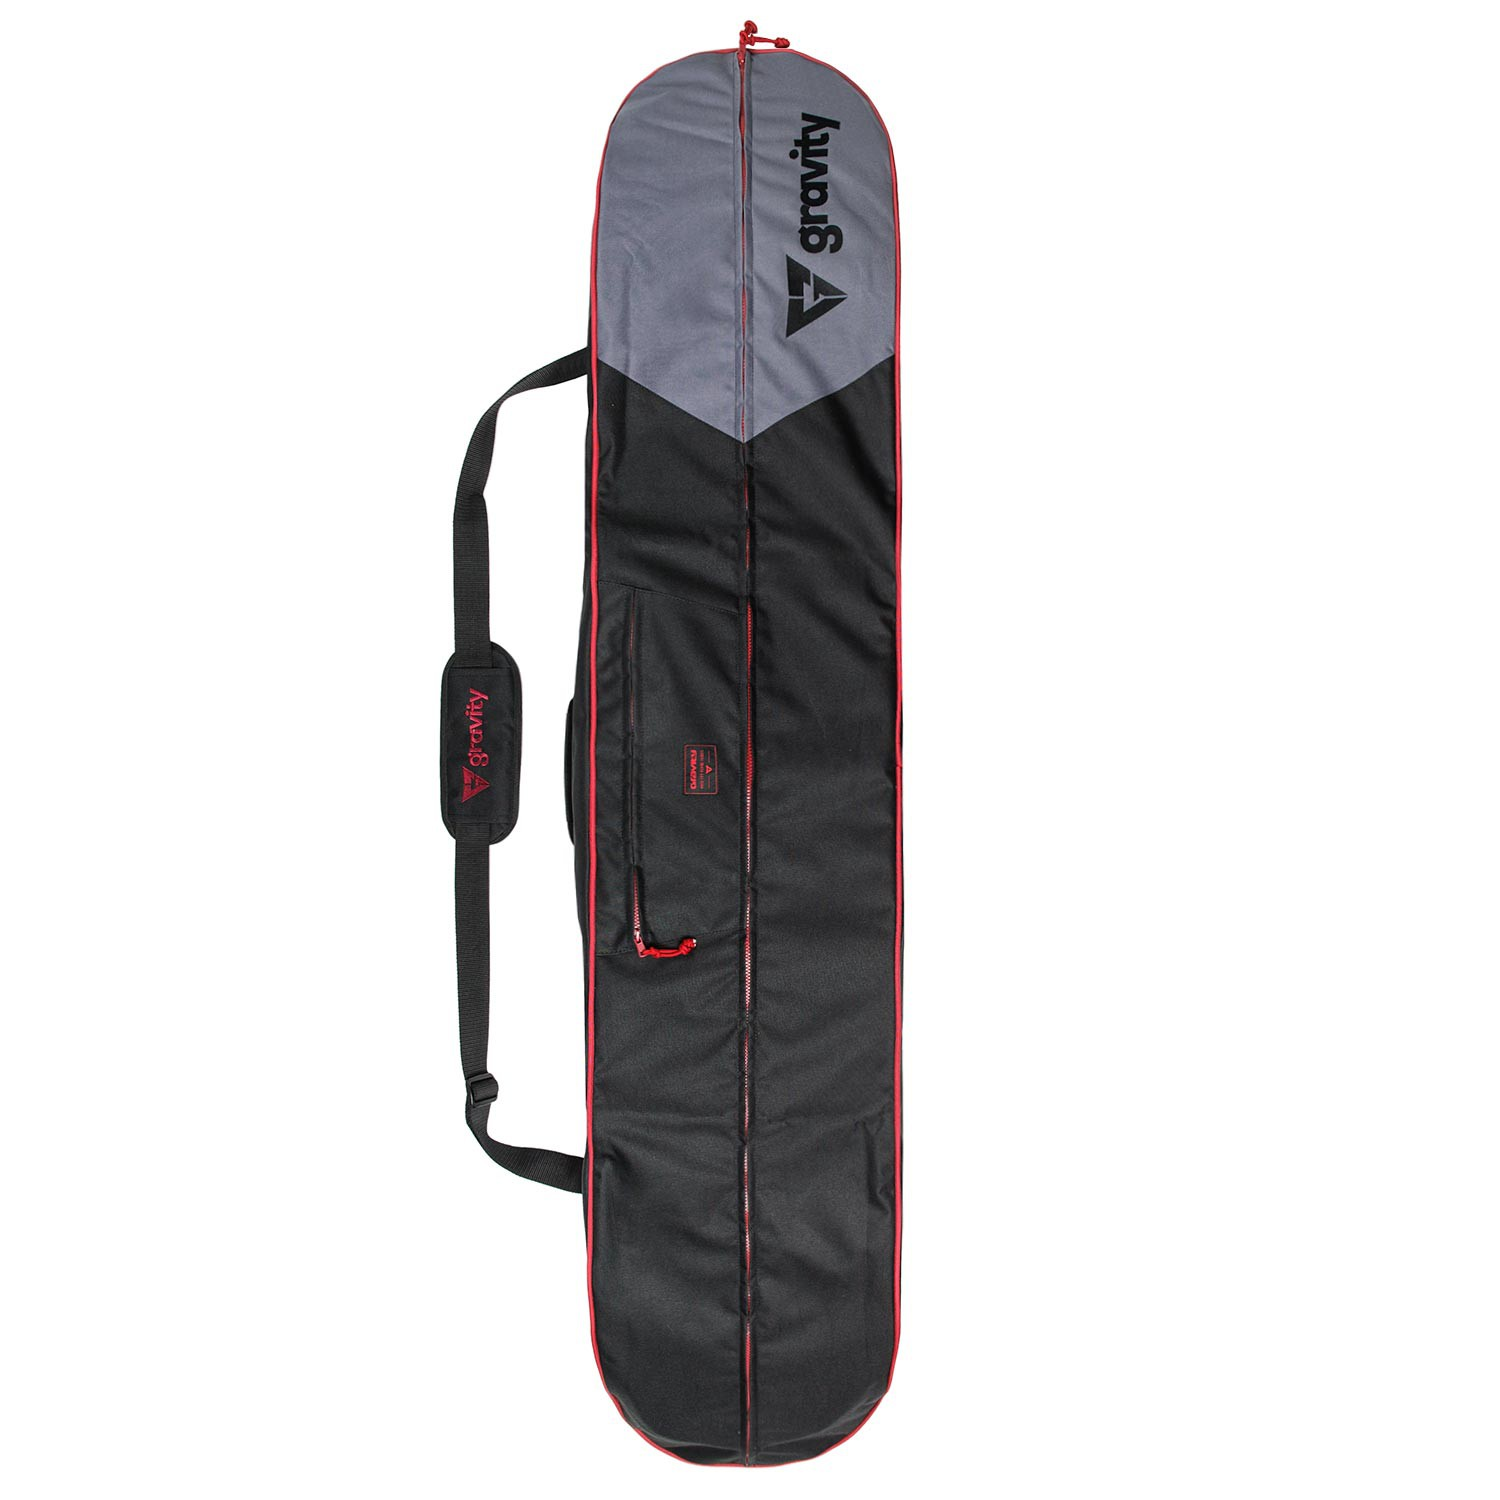 Obal na snowboard Gravity Icon black/red